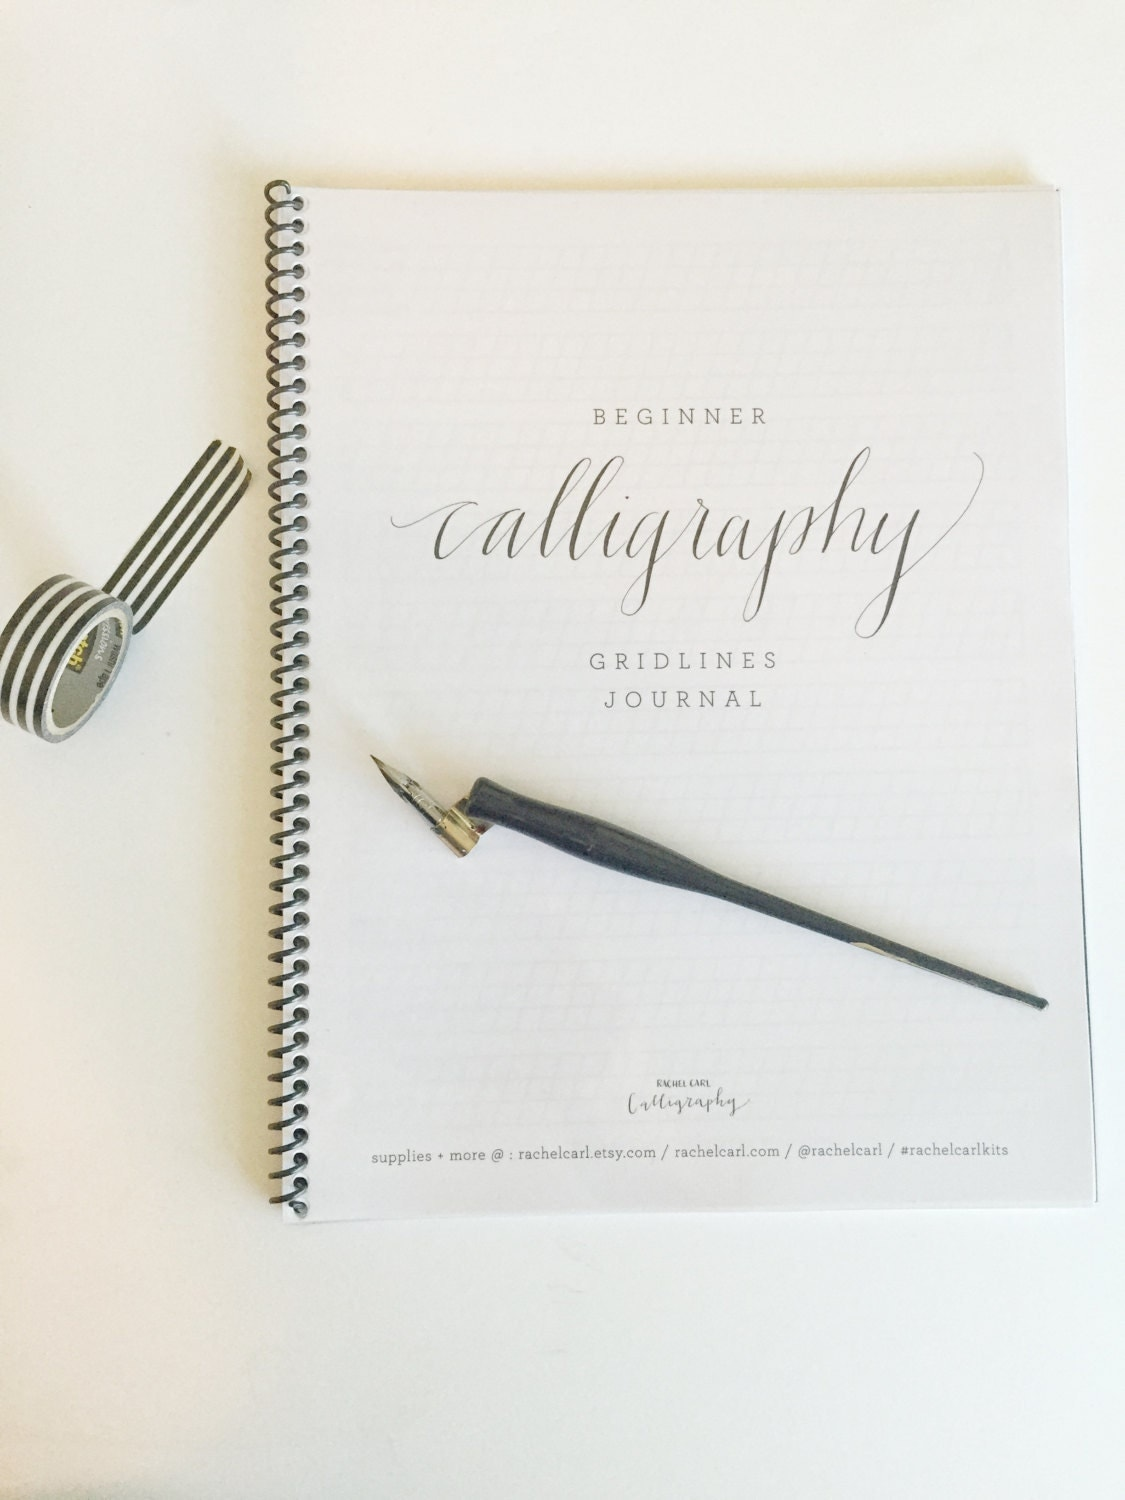 Beginner Calligraphy Journal With Gridlines Notepad